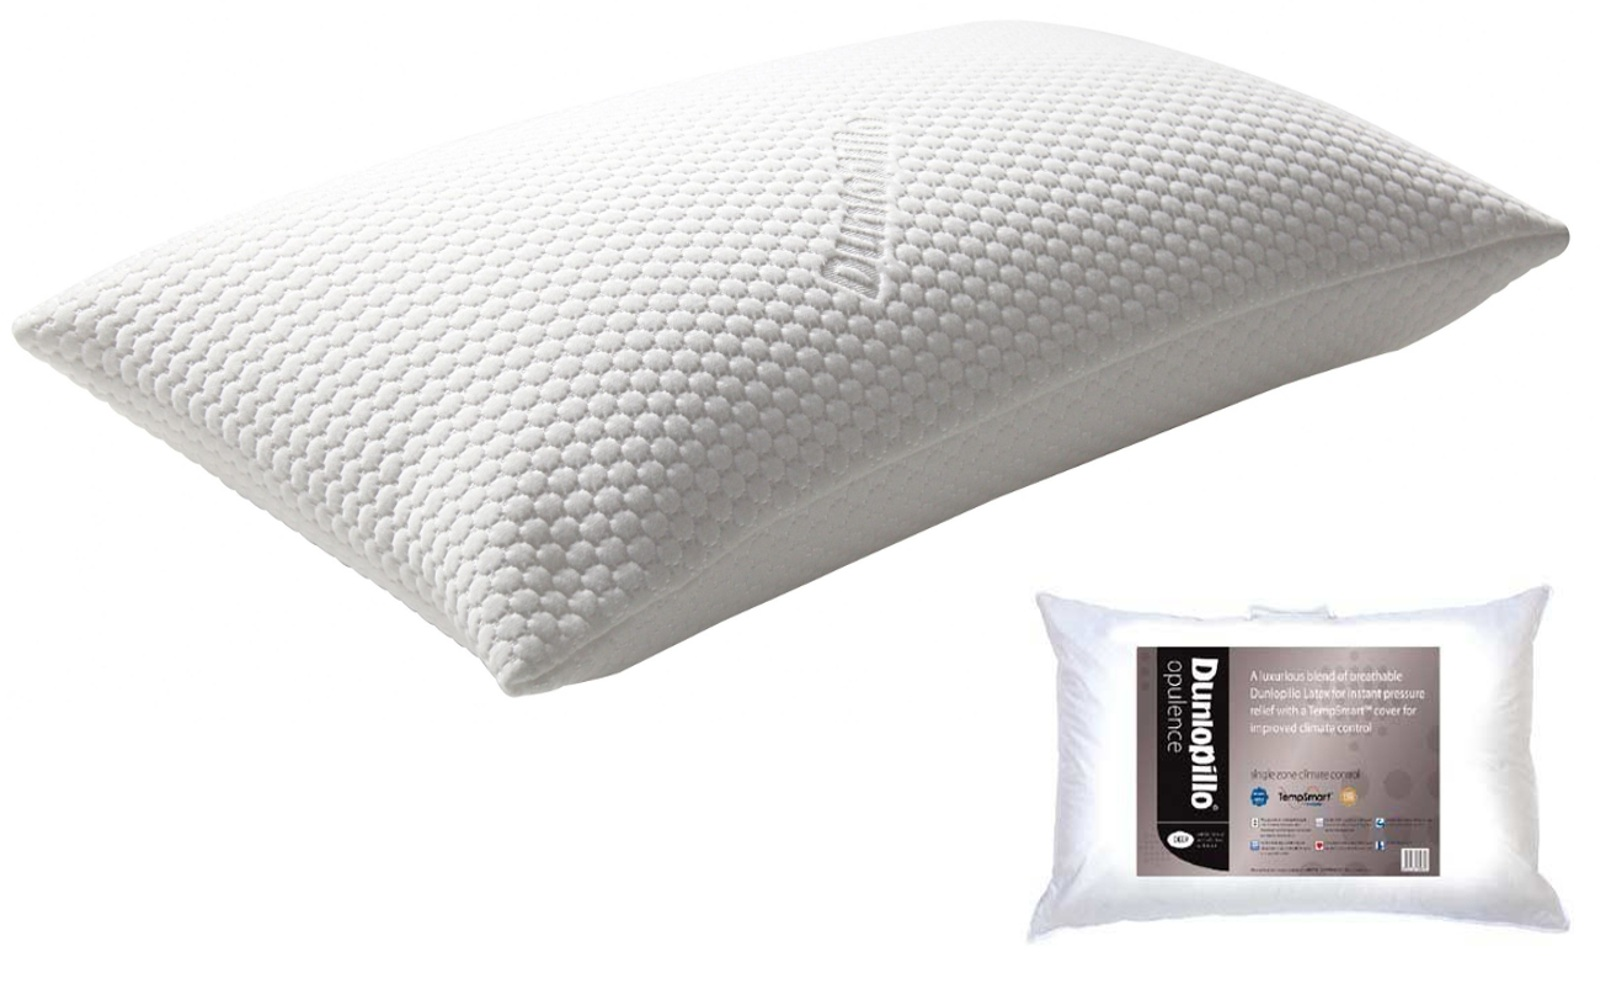 Dunlopillo Opulence Deep Luxurious Latex Pillow Washable